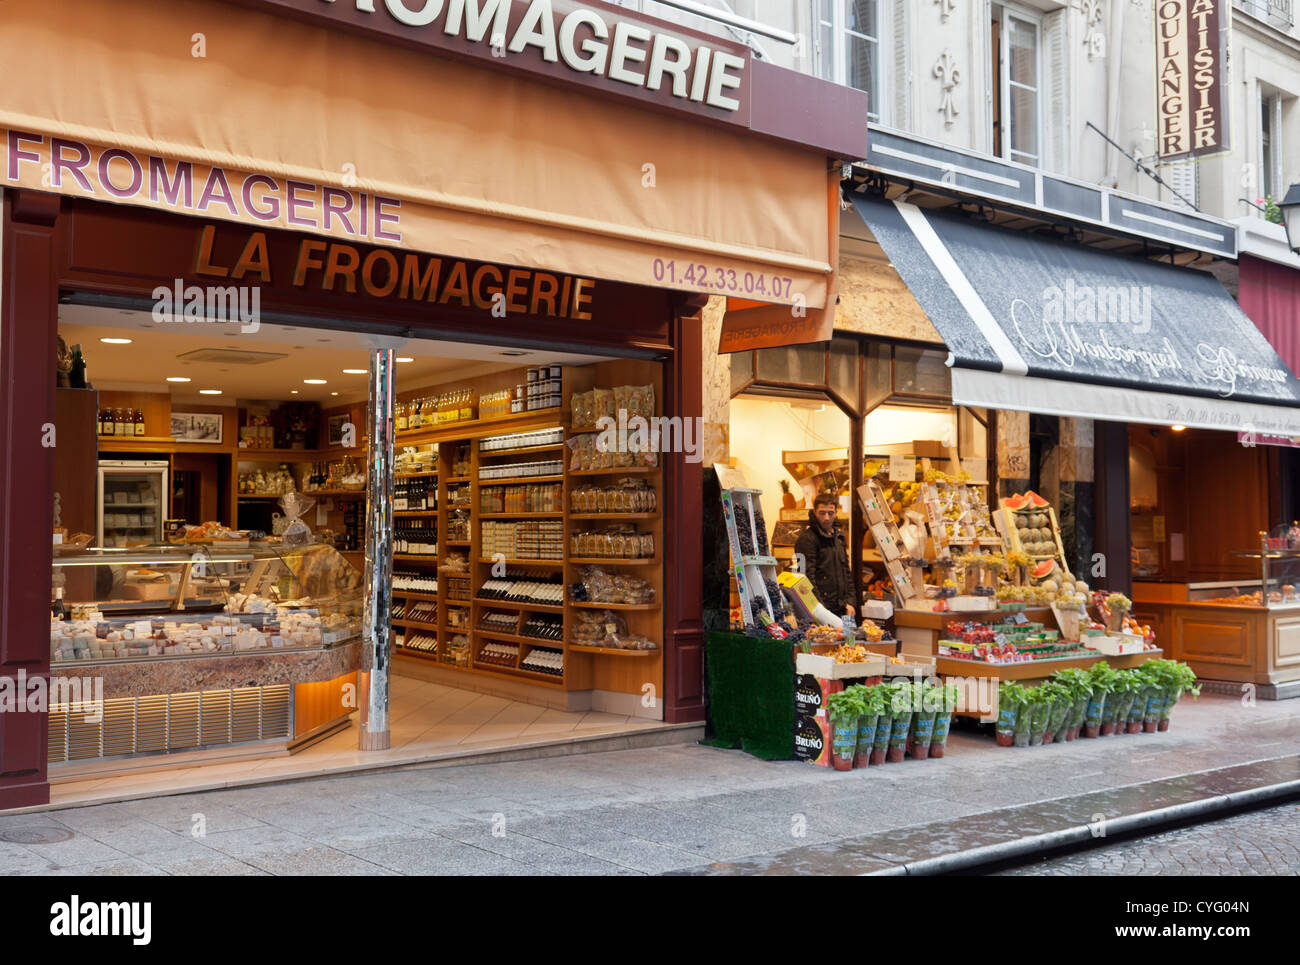 La Fromagerie, specialist cheese,wine and delicatessen shop and Montorgueil Primeur, fruiterer, Paris, France - Stock Image